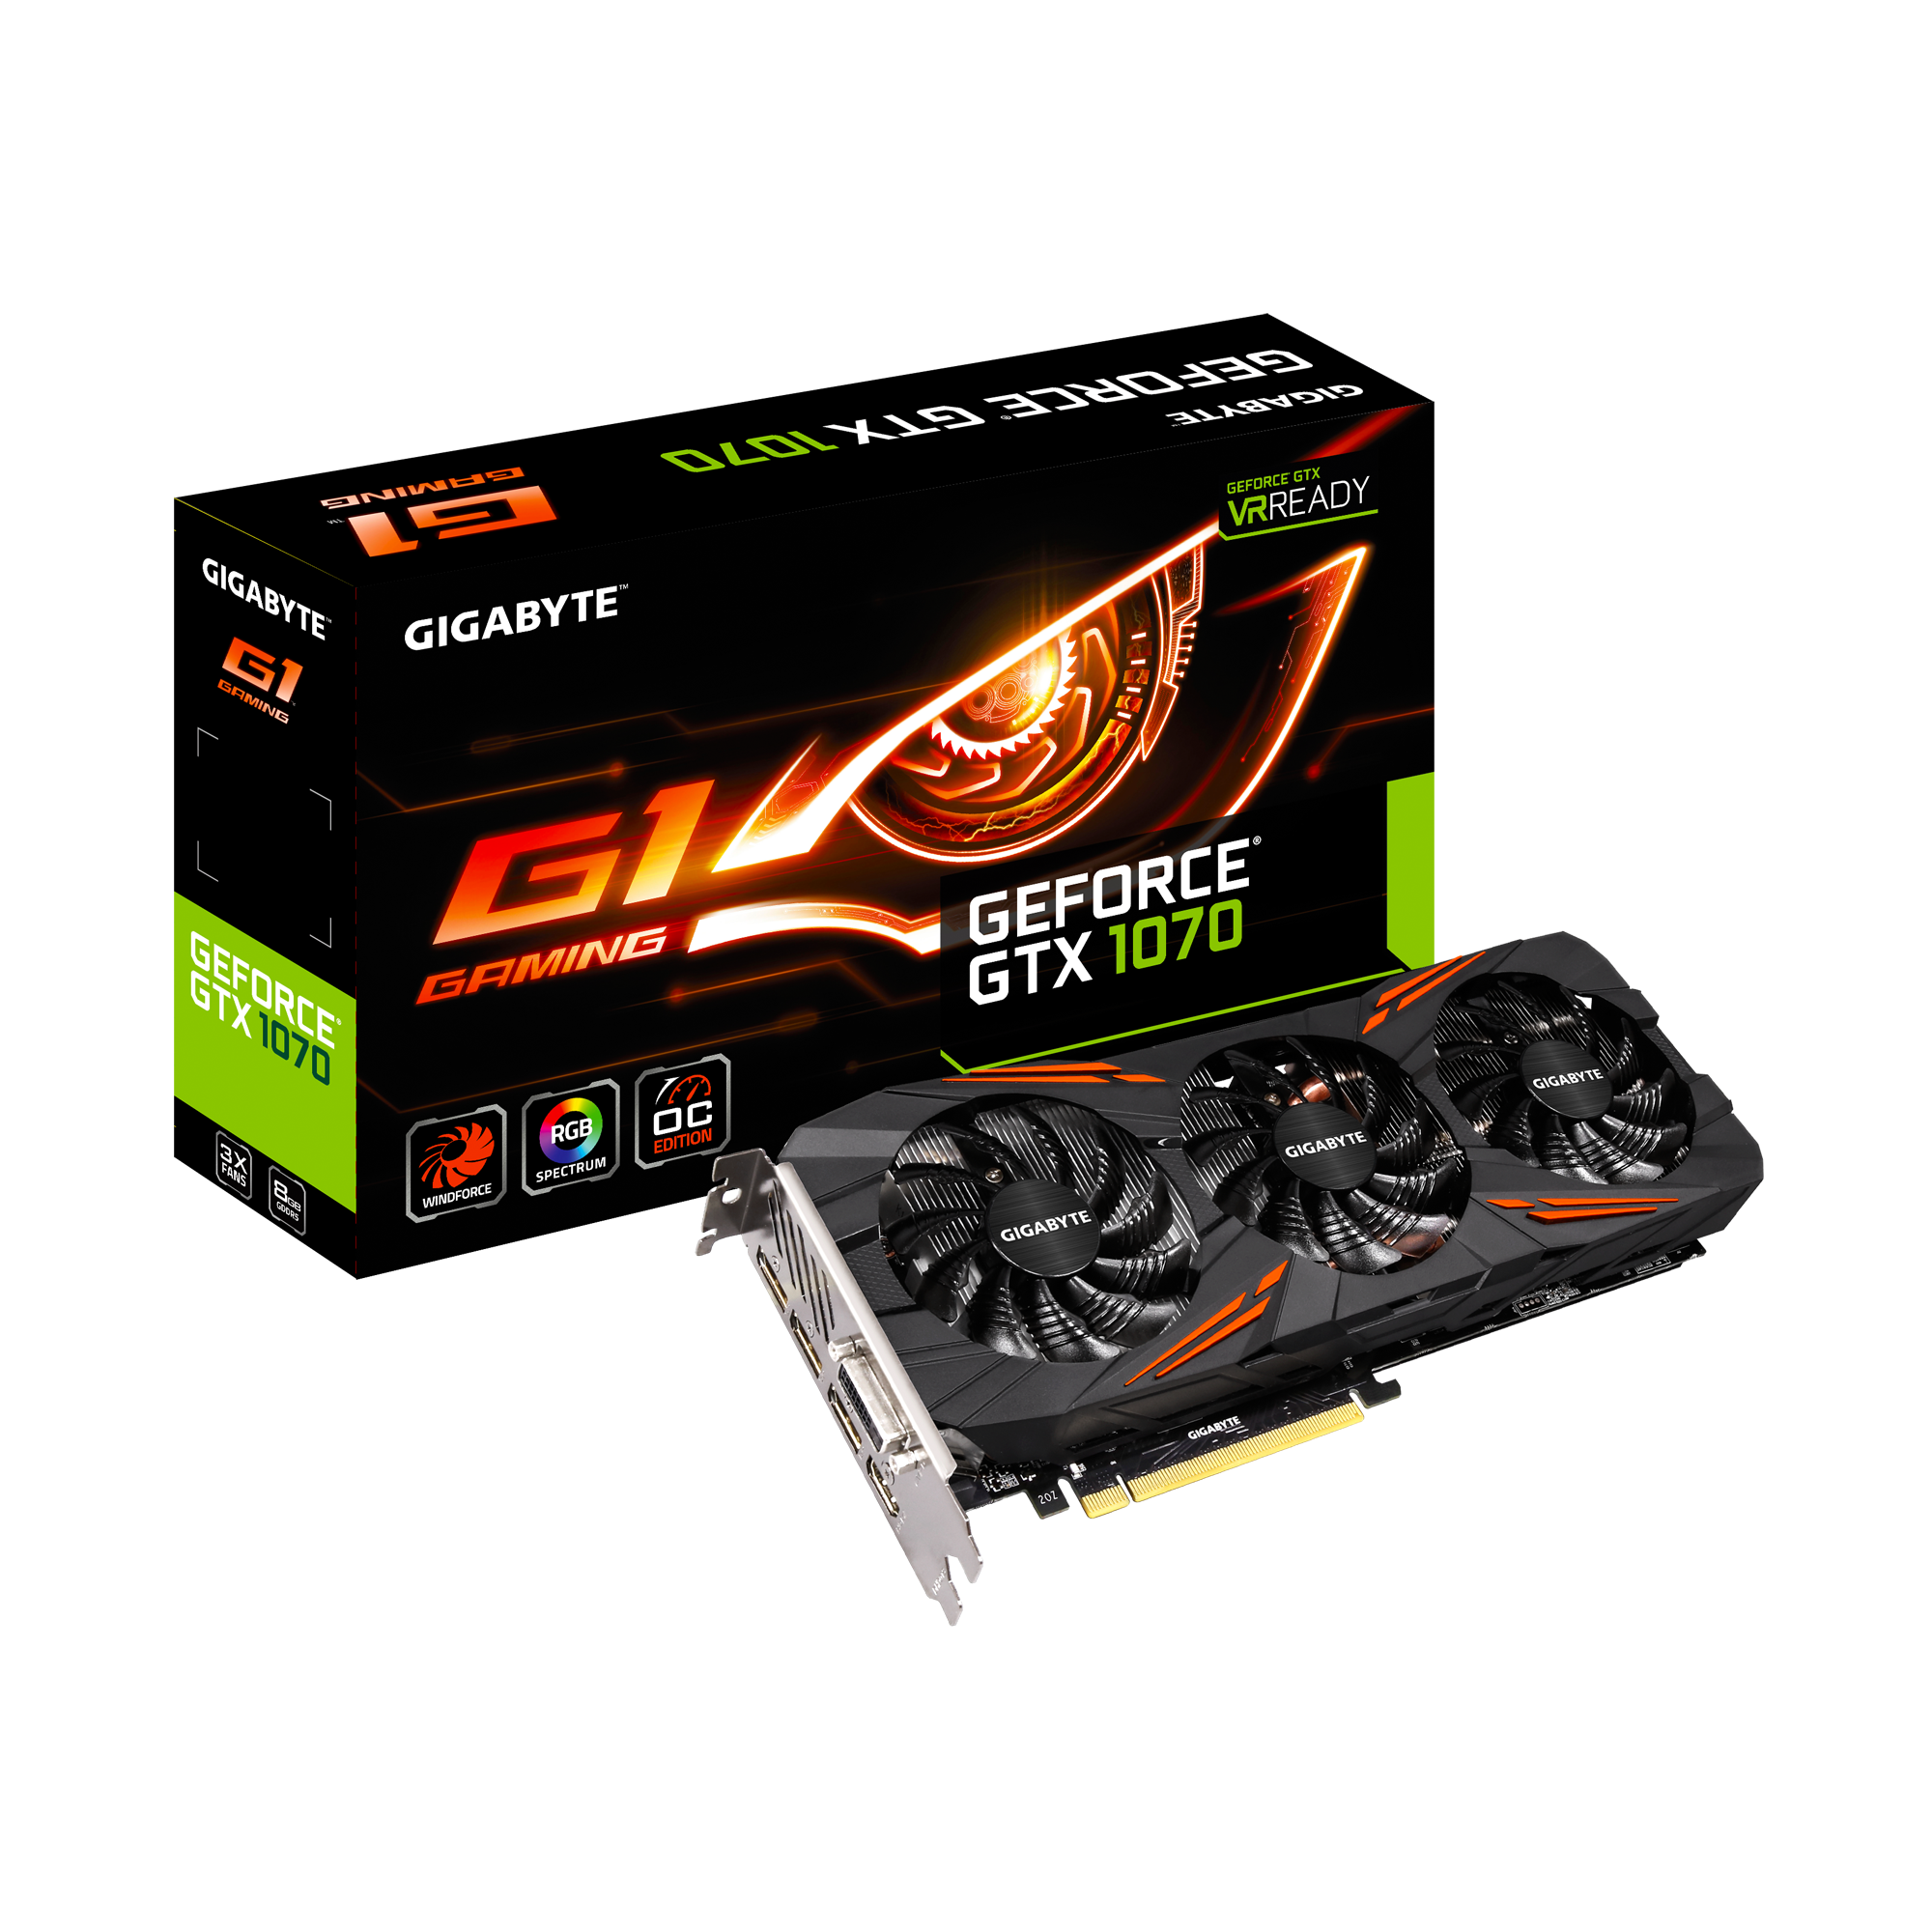 技嘉 顯示卡 GeForce GTX 1070 G1 GAMING 8G  (GV-N1070G1-8GD)